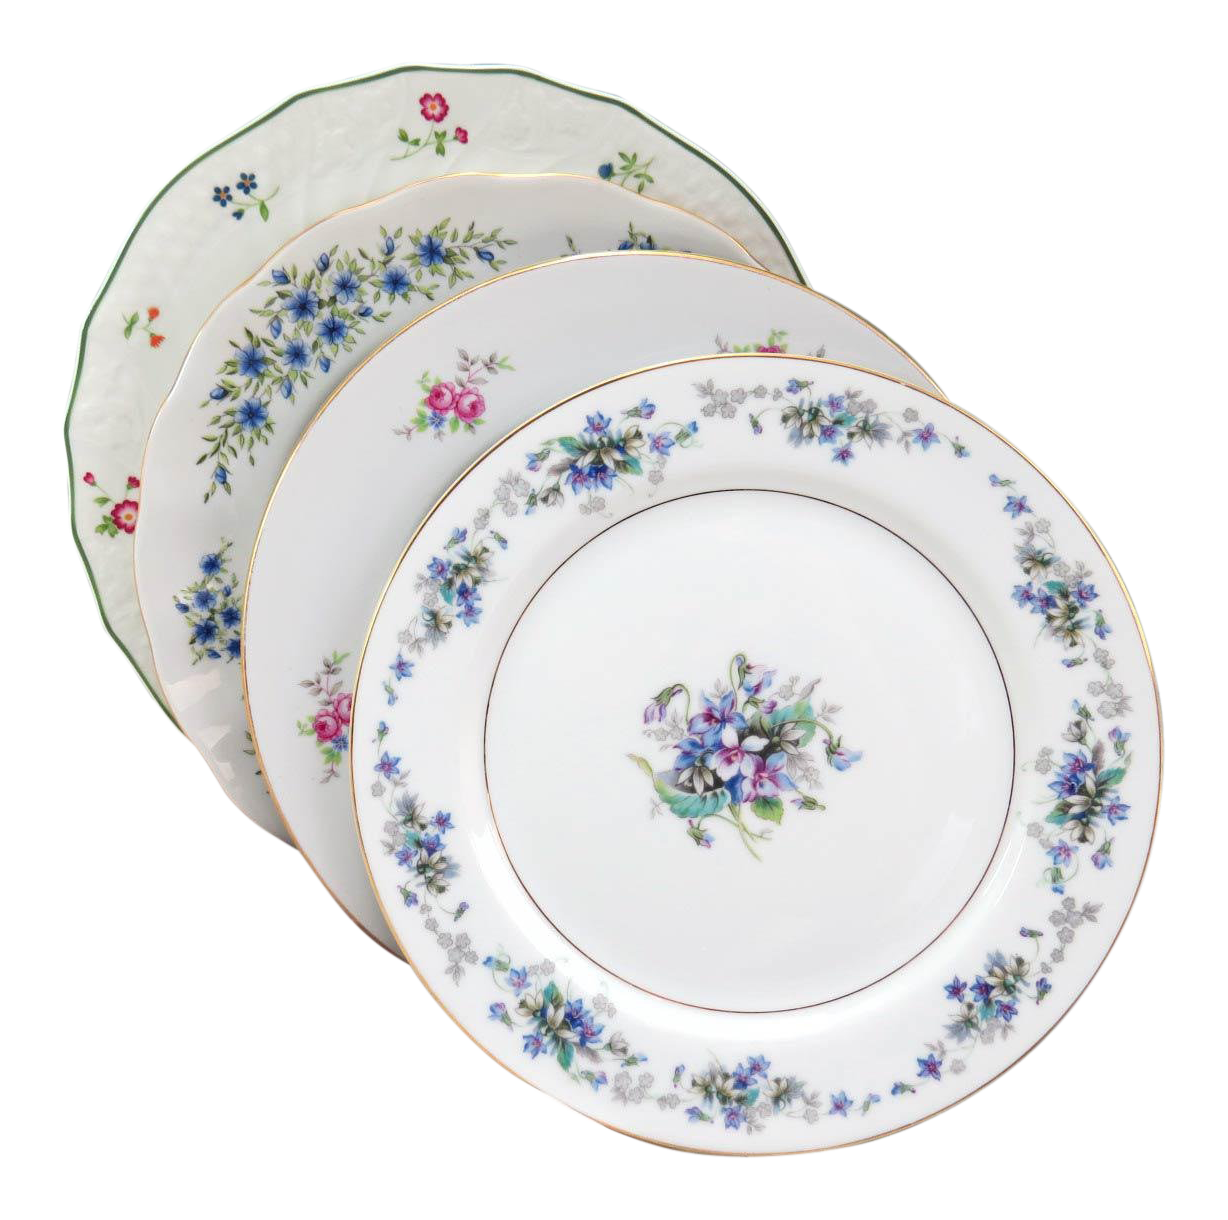 sc 1 st  Chairish & Vintage Mismatched Fine China Dinner Plates - Set of 4 | Chairish